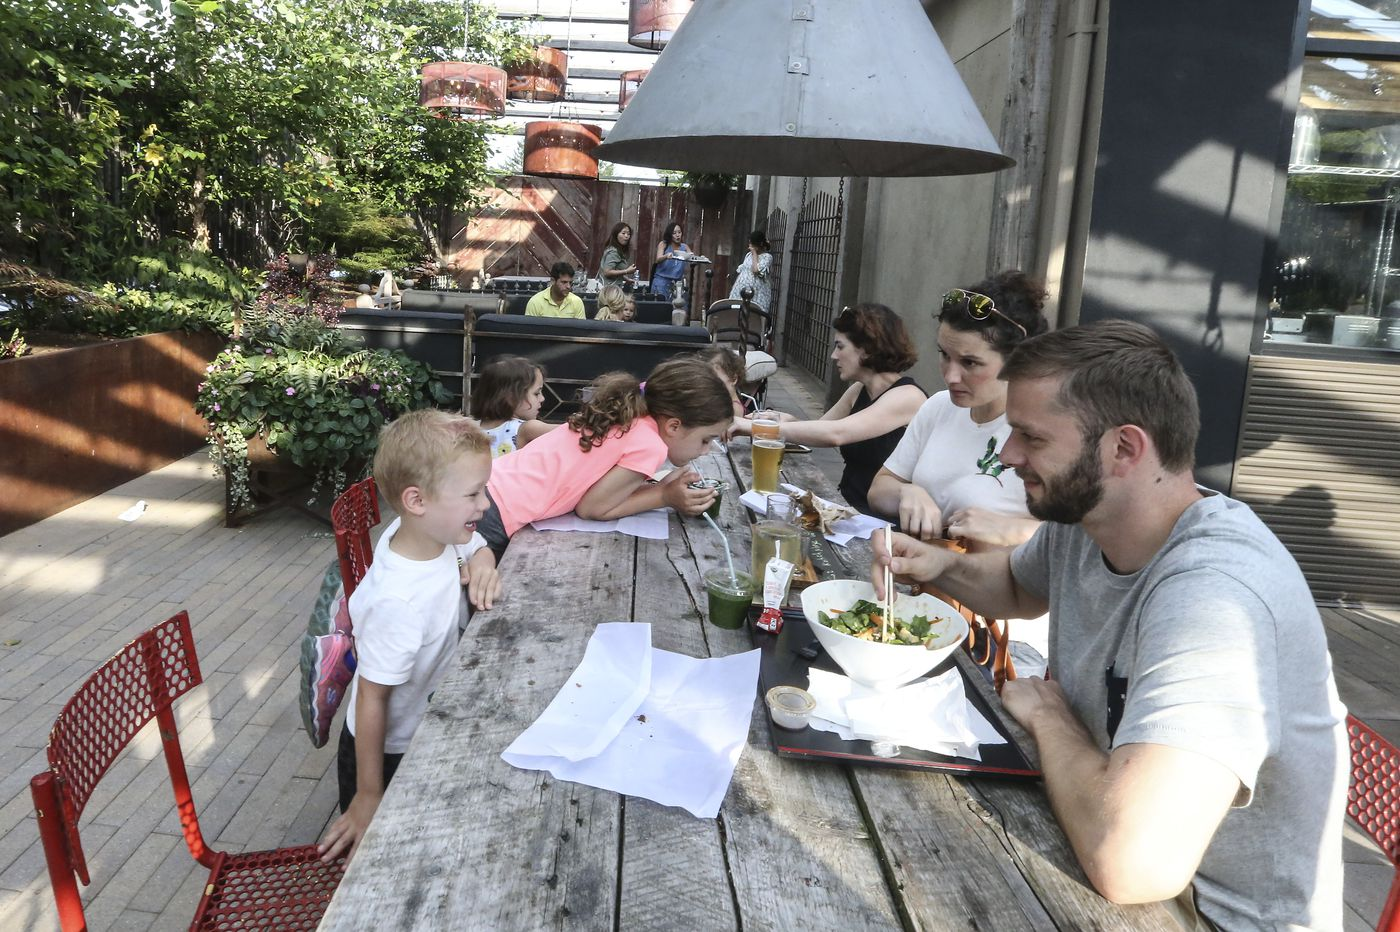 In Chestnut Hill, residents sue family-friendly beer garden